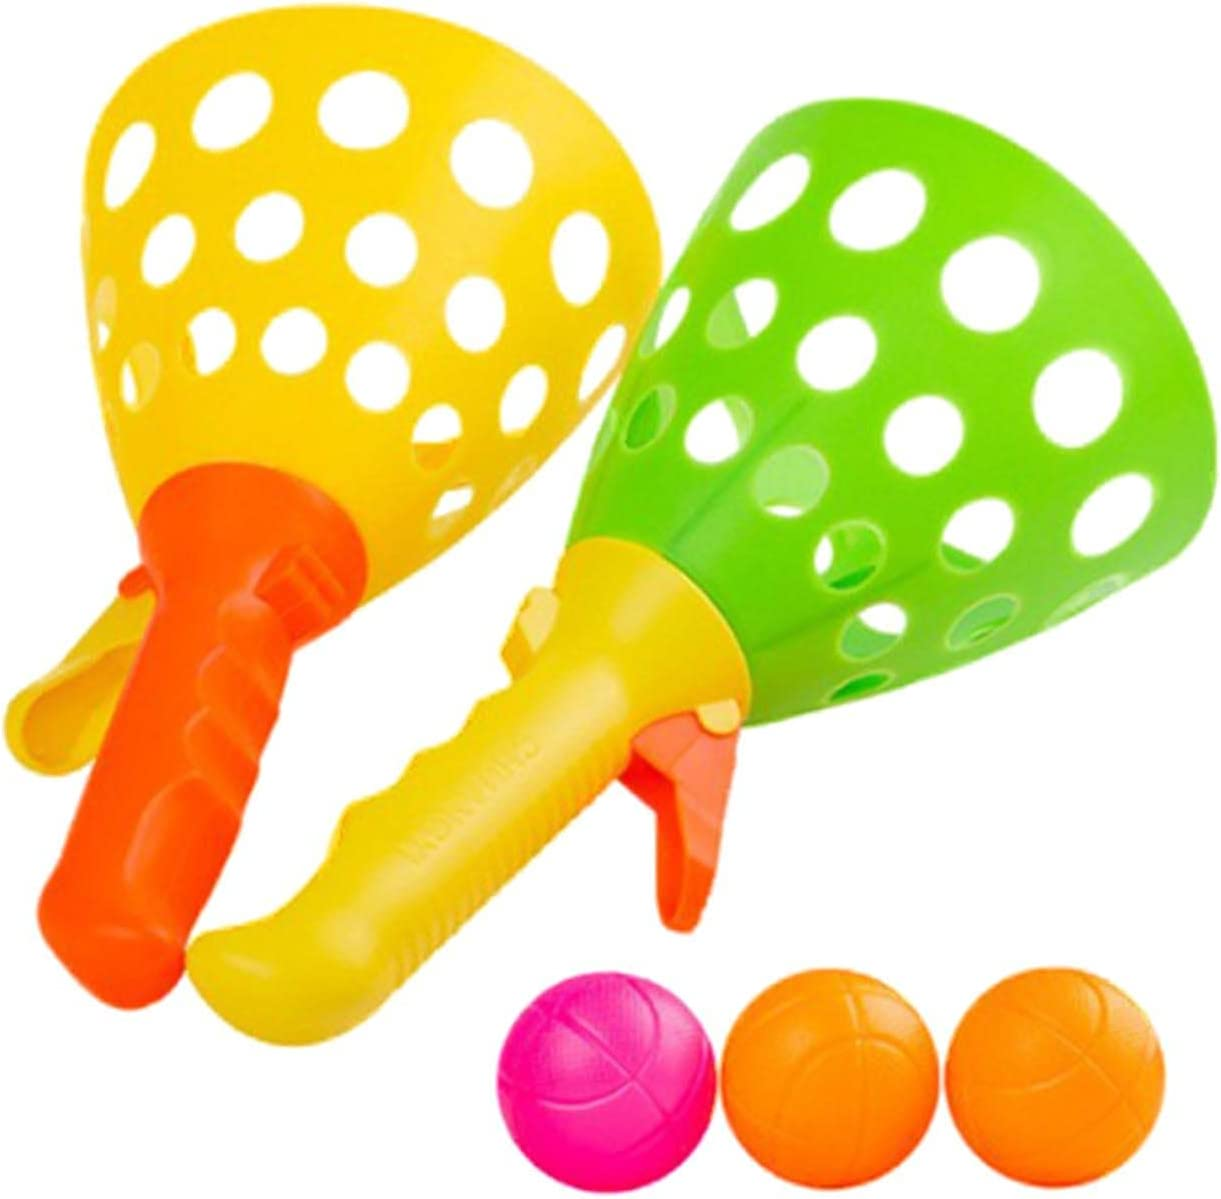 signmeili 1 Set, catching and Throwing Game, pop-up catching Gam